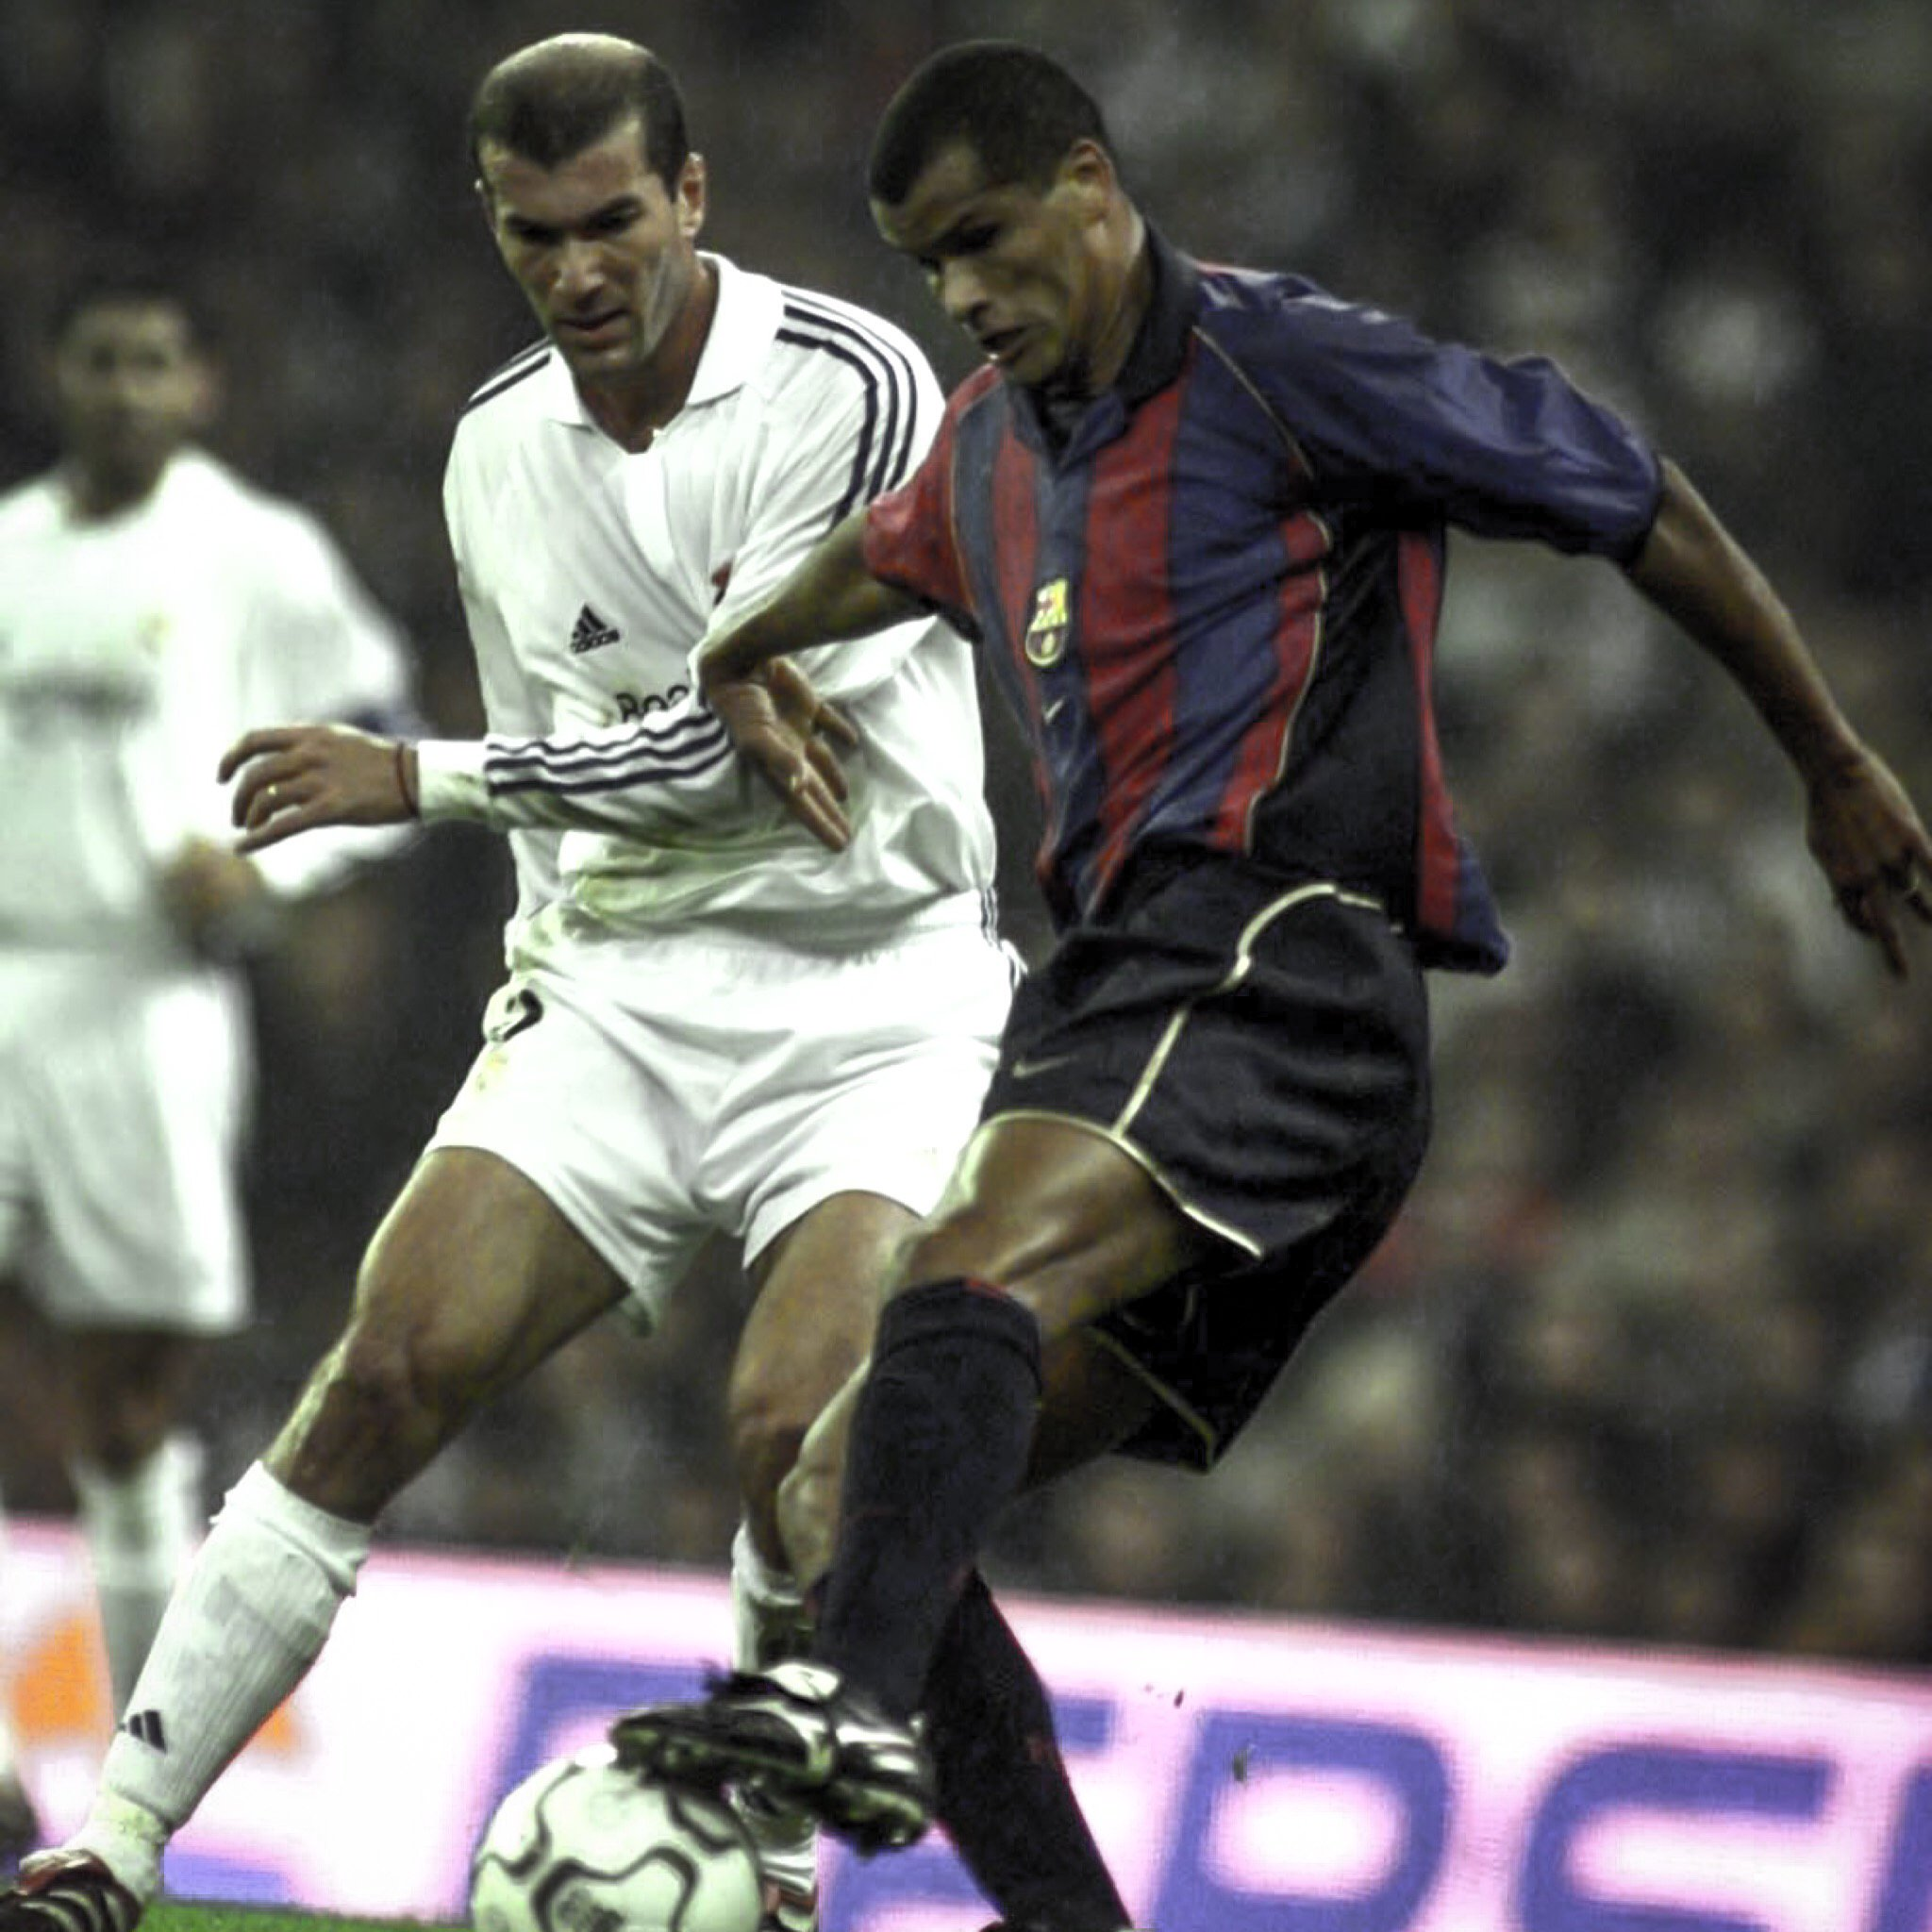 You have a last-minute free-kick to win the game ...  ... Zidane or Rivaldo? ������  #UCL  #ThrowbackThursday https://t.co/OLWgiQPTrU